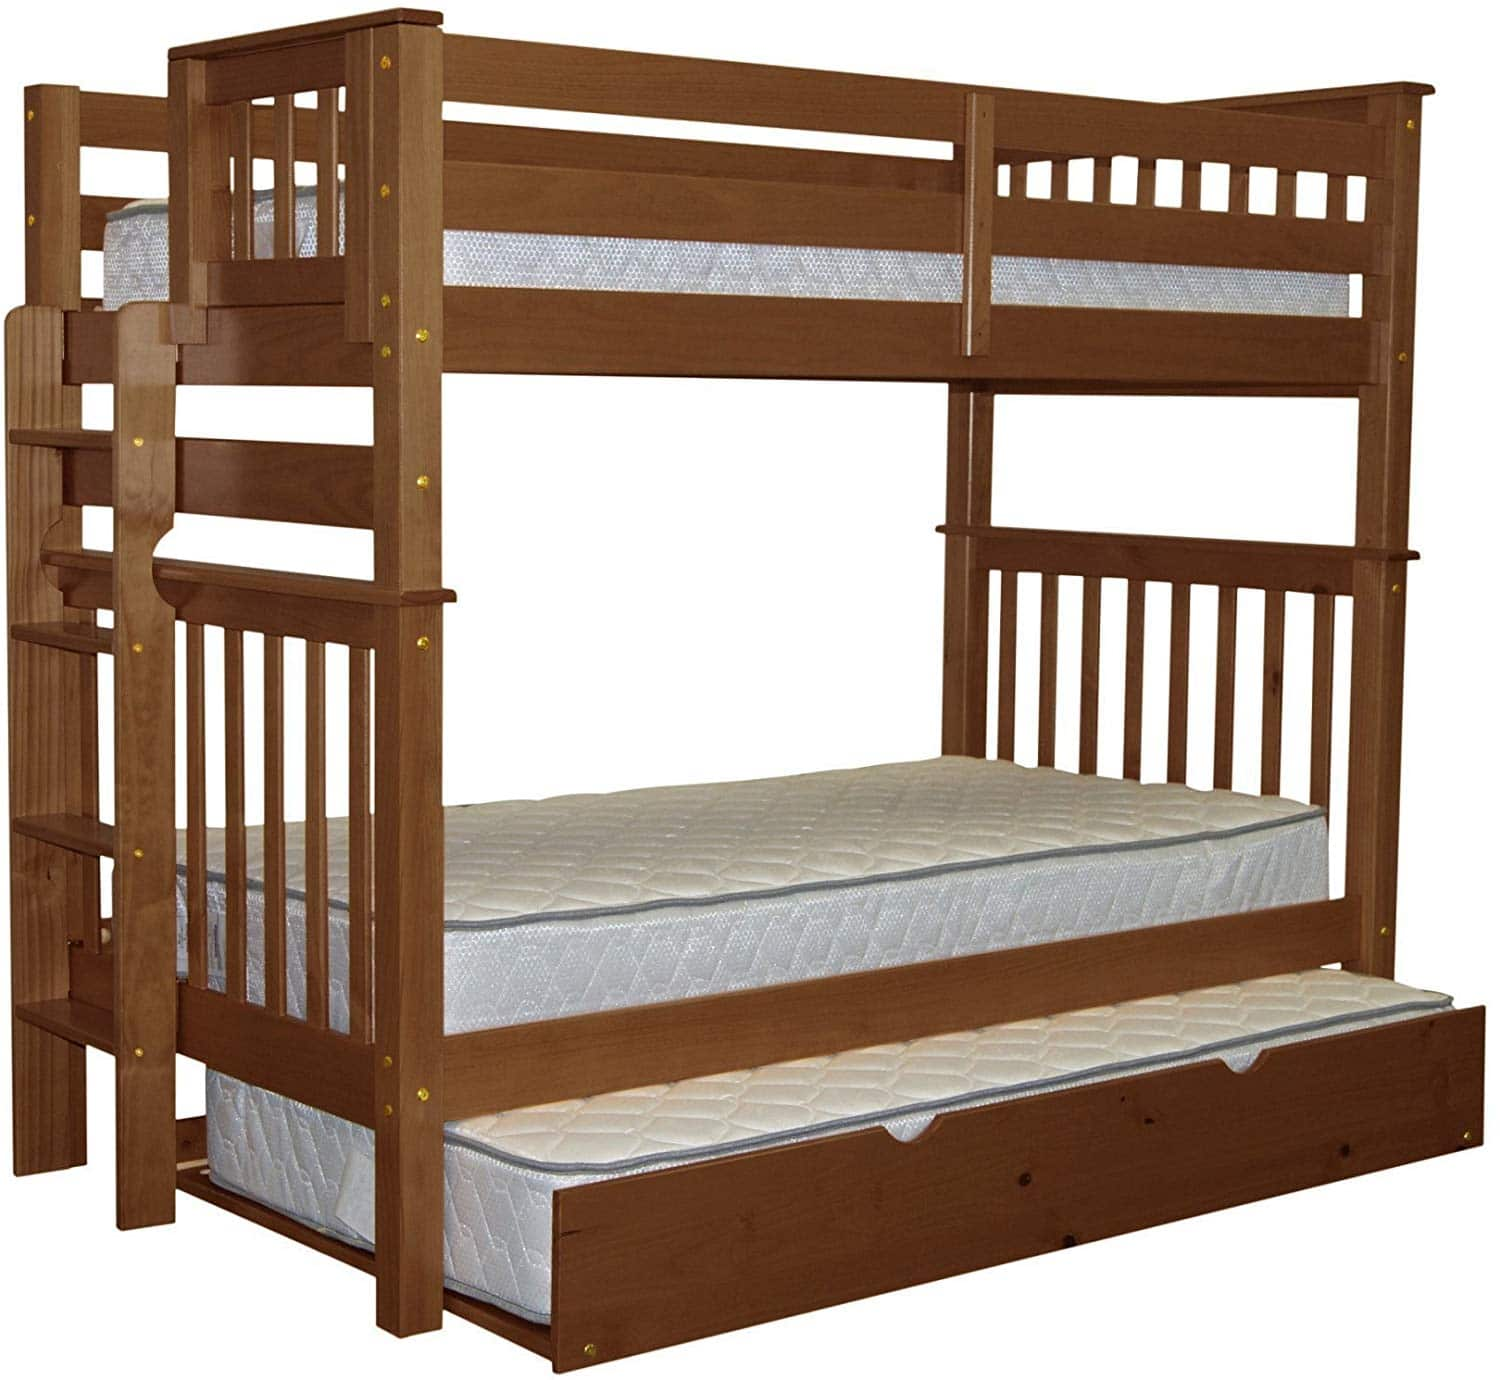 Bedz King Tall Bunk Beds Twin over Twin